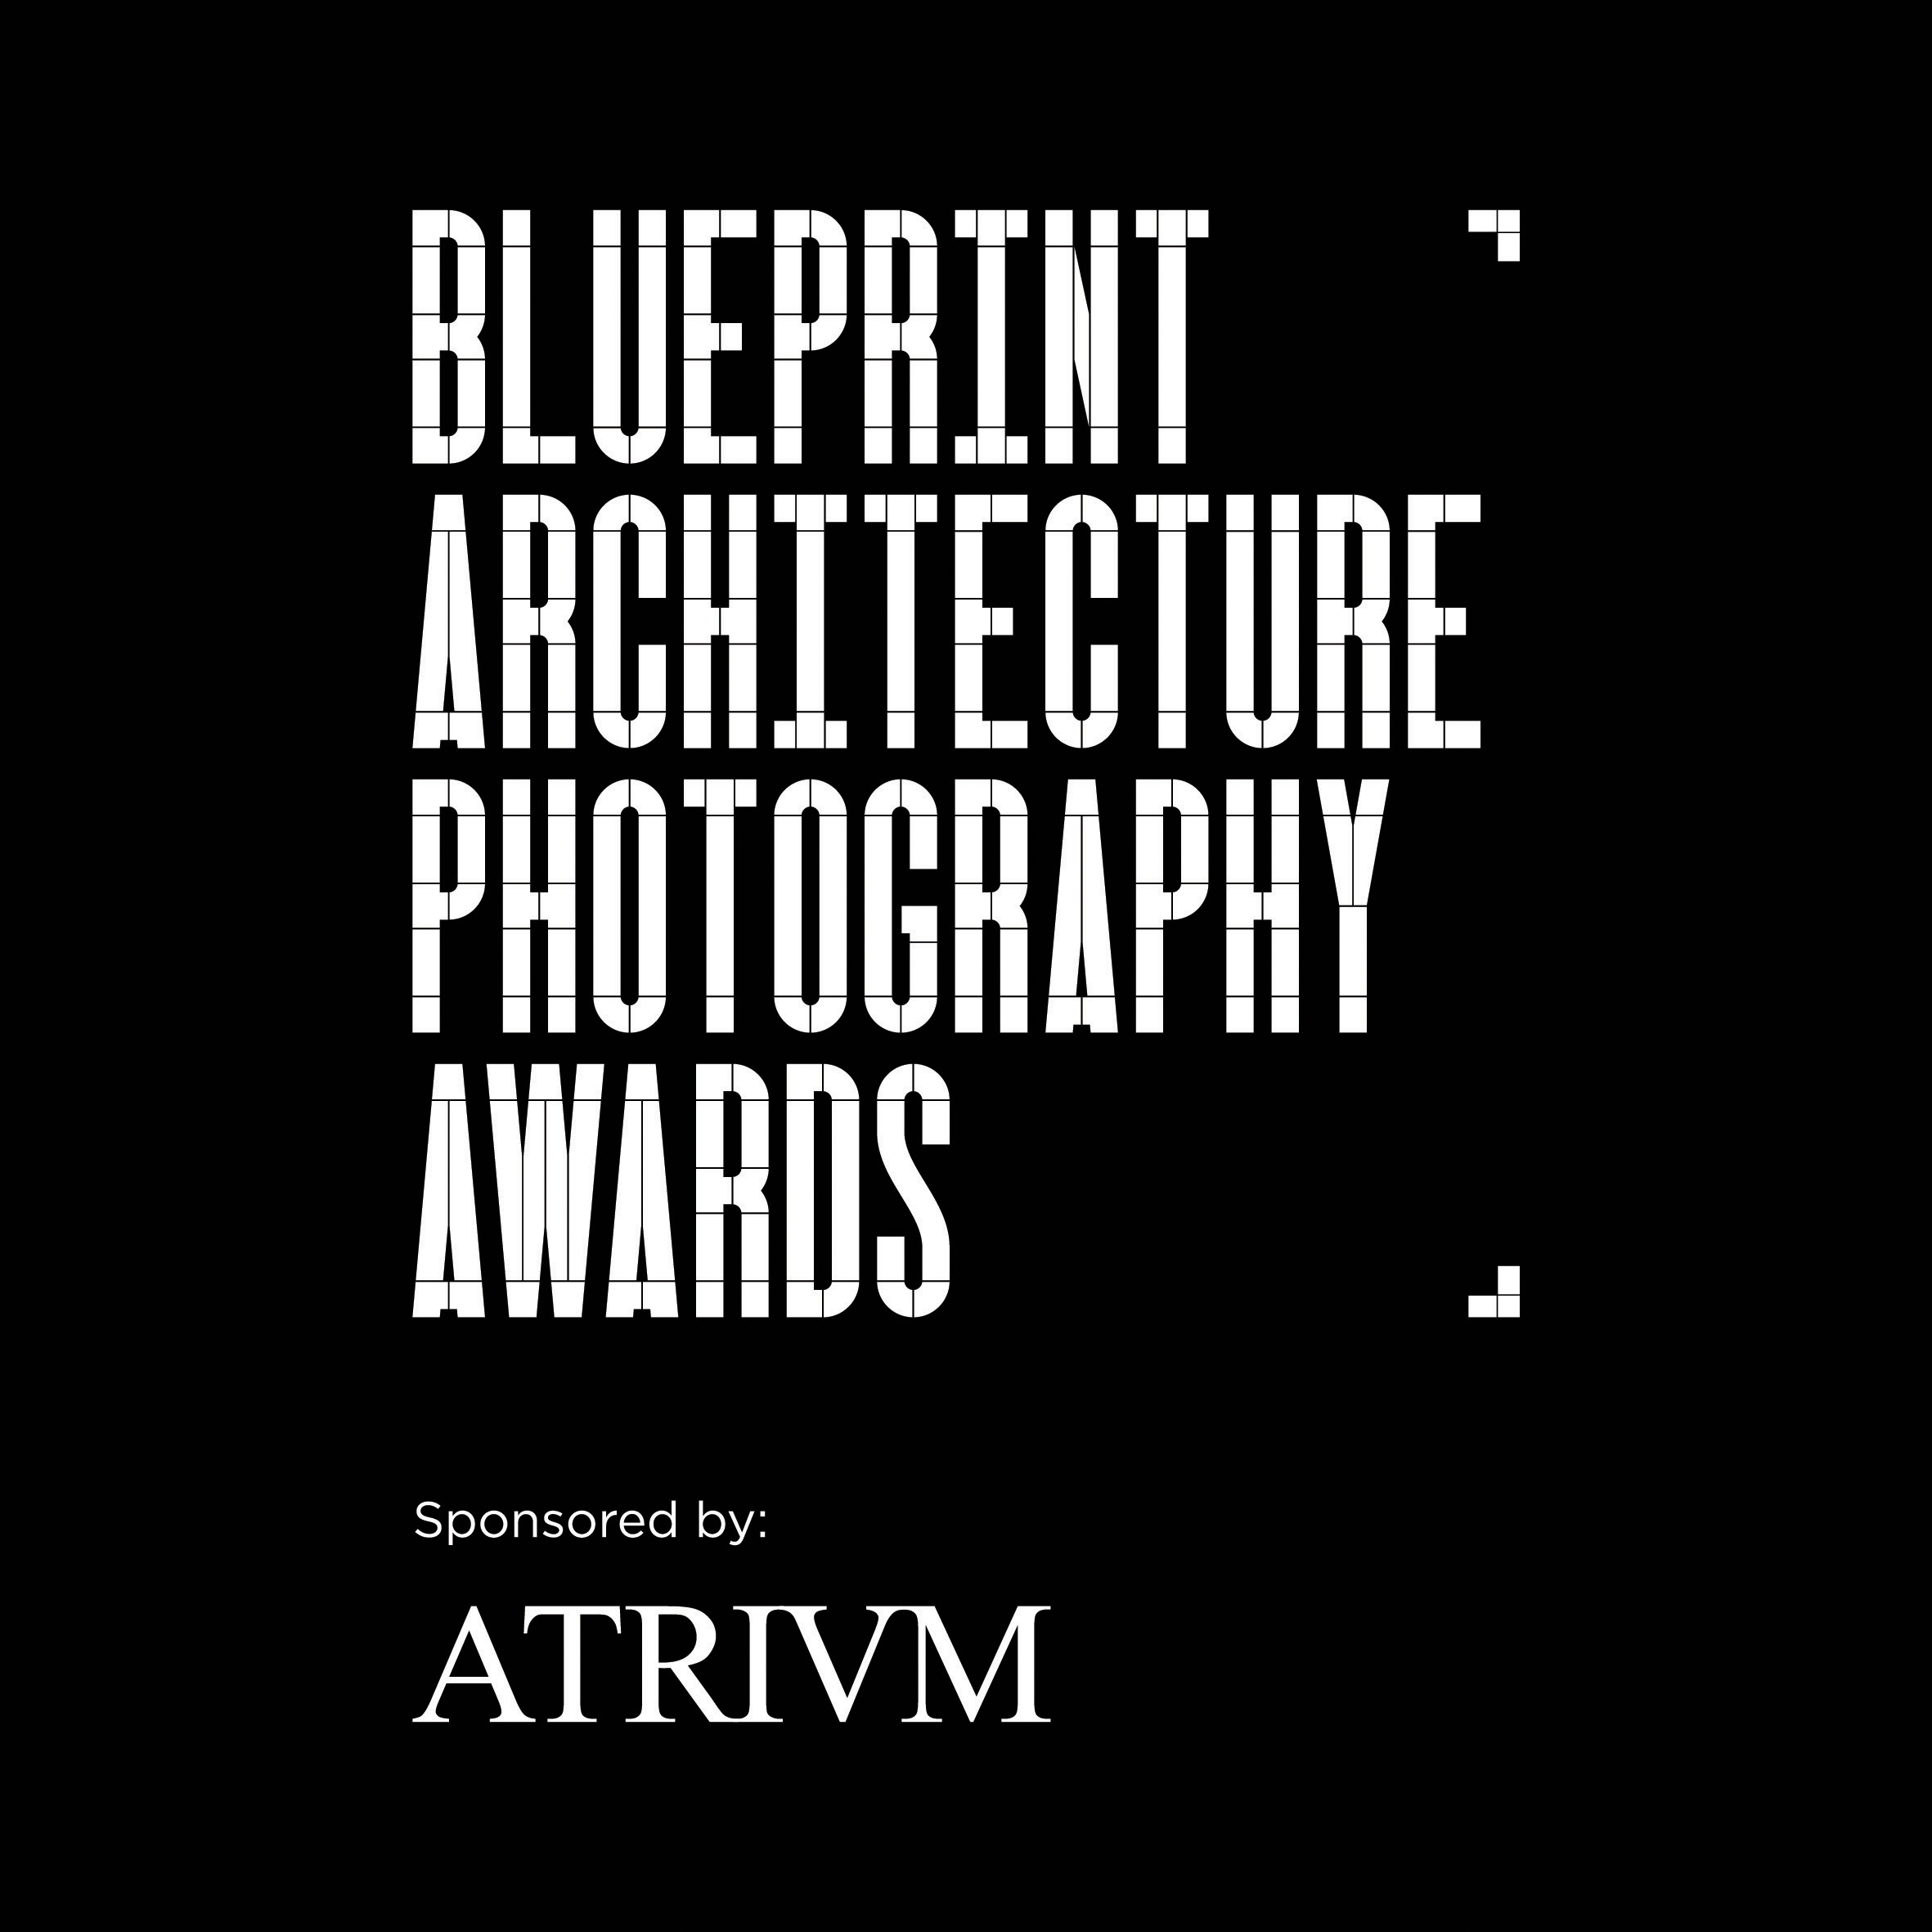 Blueprint photography awards welcome to the blueprint architecture photography awards website malvernweather Choice Image